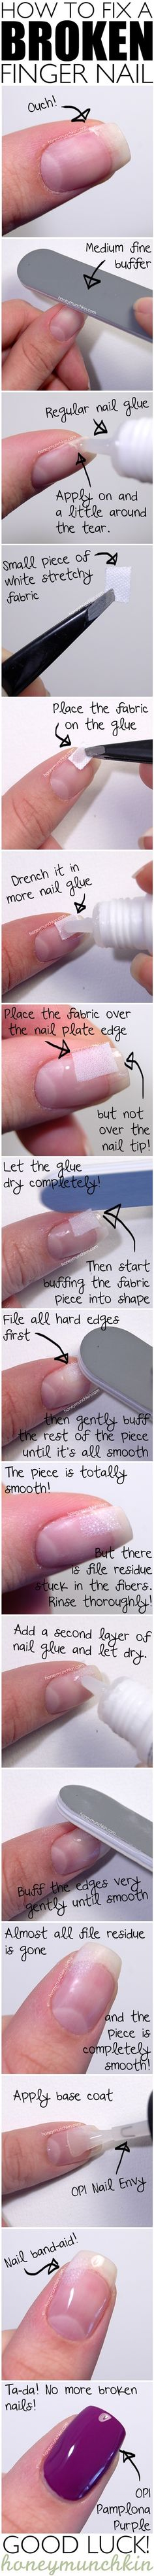 How to fix a Broken Nail by Loti